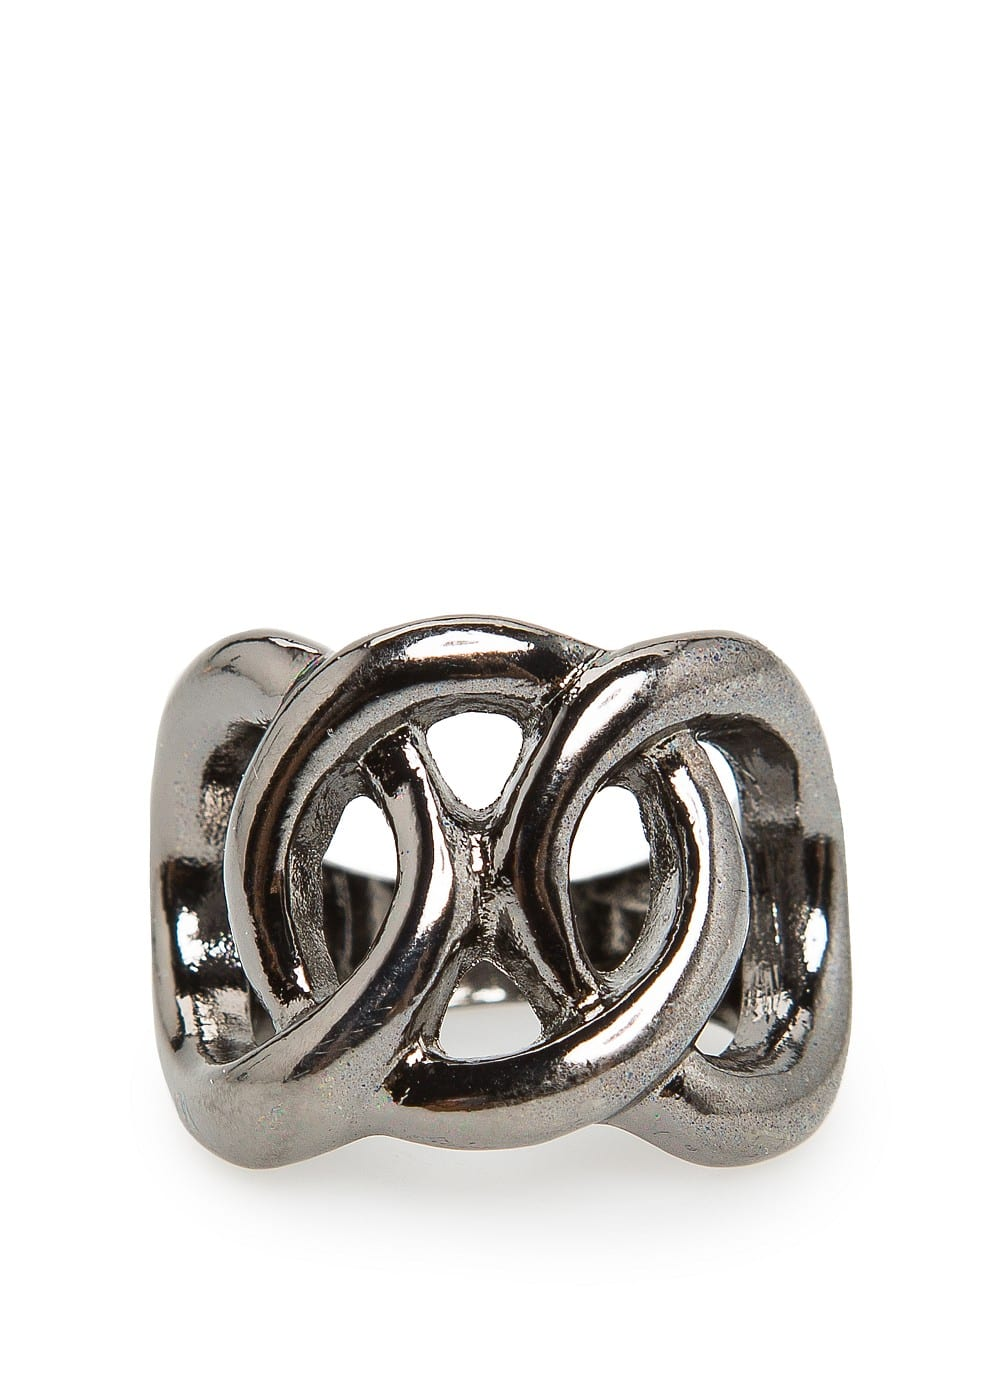 Links shape ring